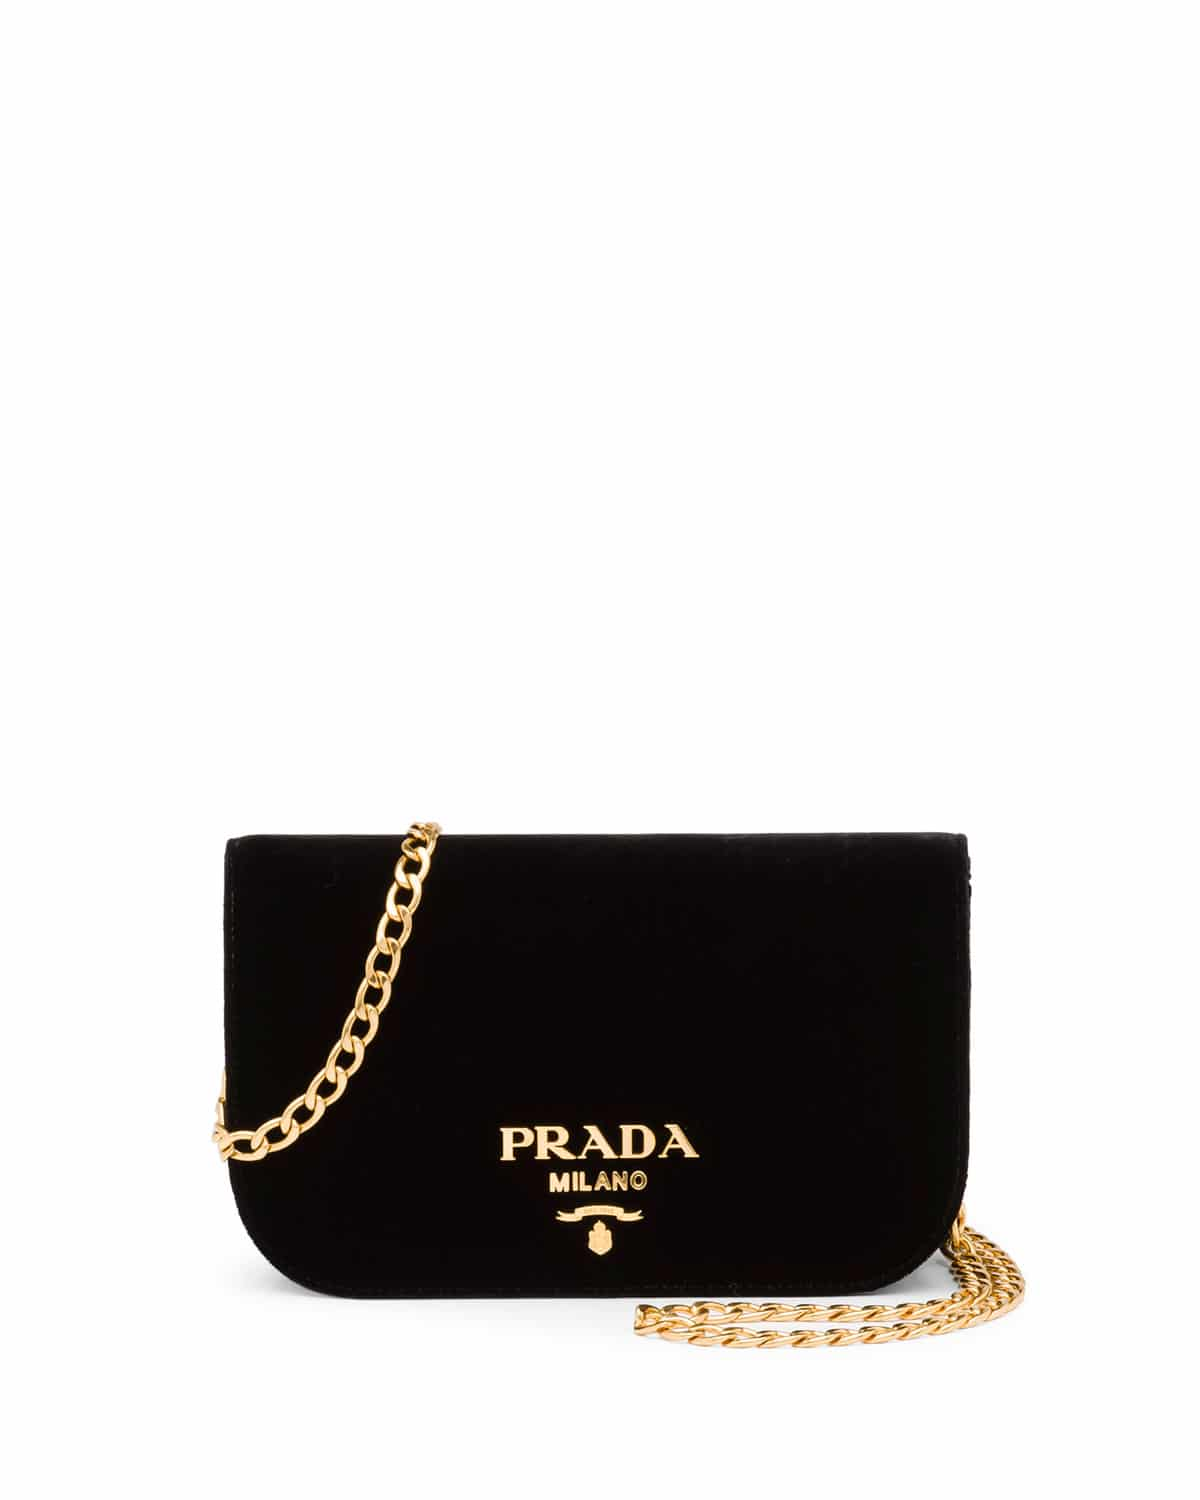 Prada Black Velvet Small Flap Crossbody Bag